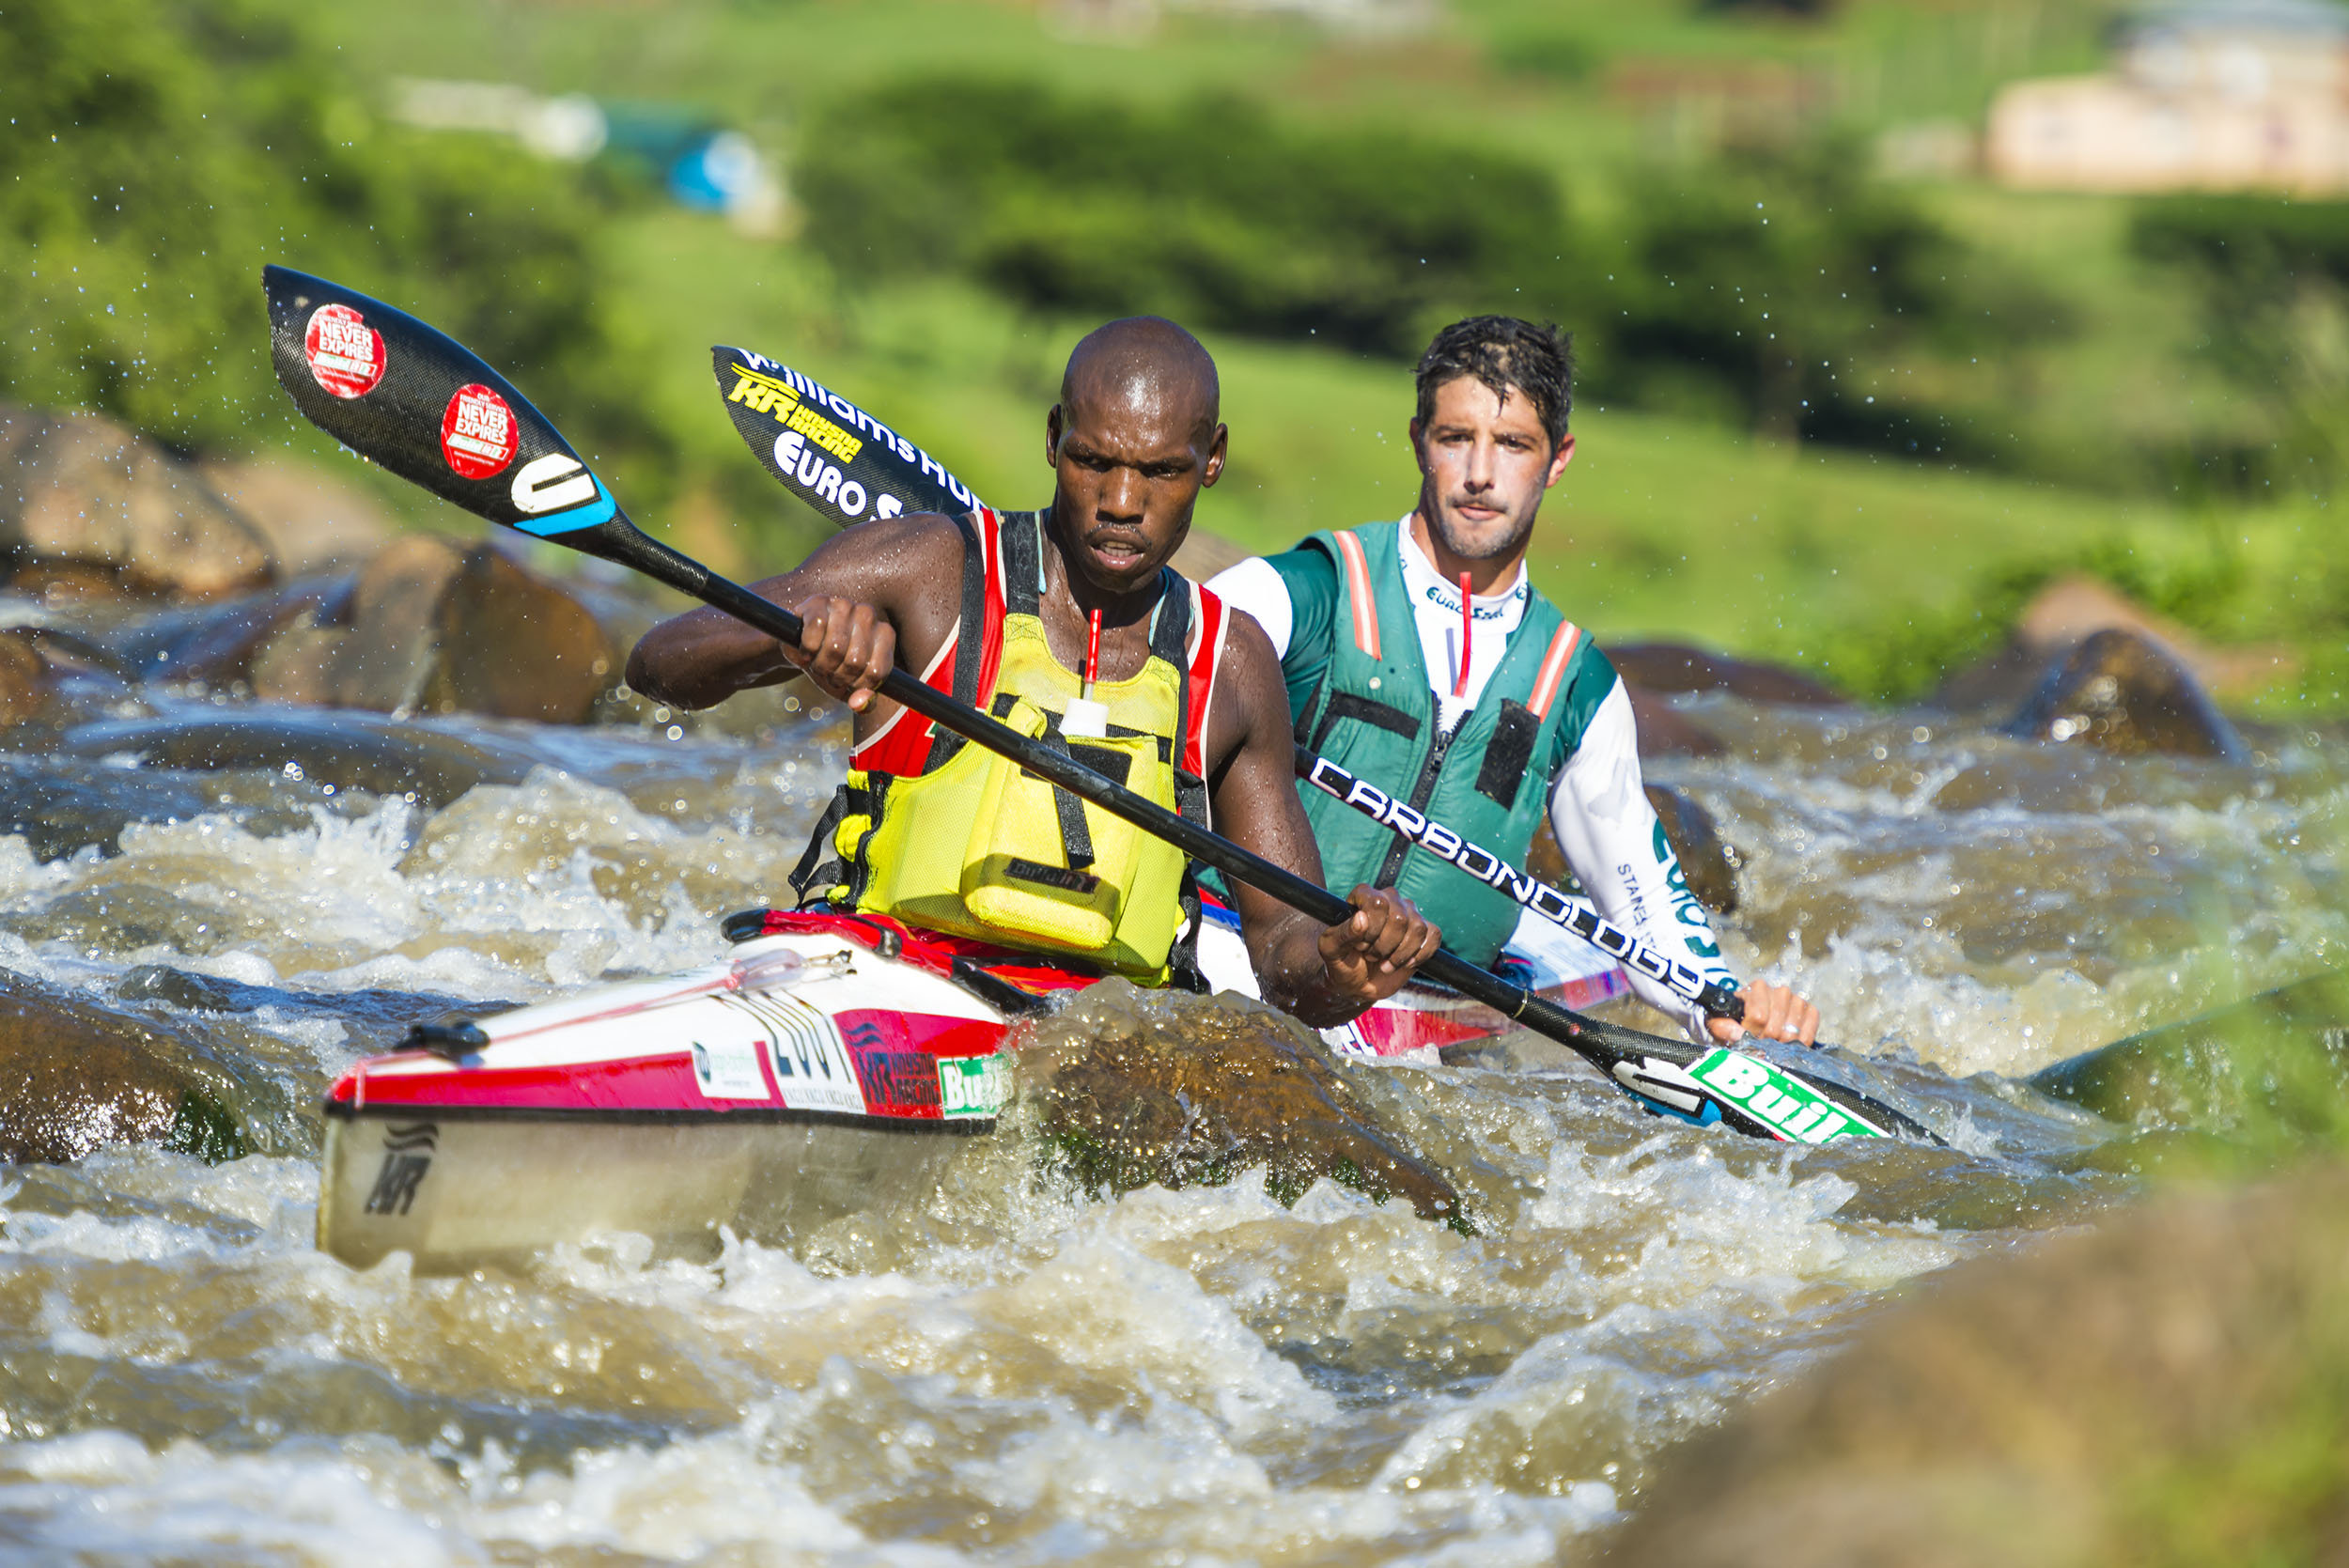 Mbanjwa and Rubenstein up their game in Dusi warm-up races